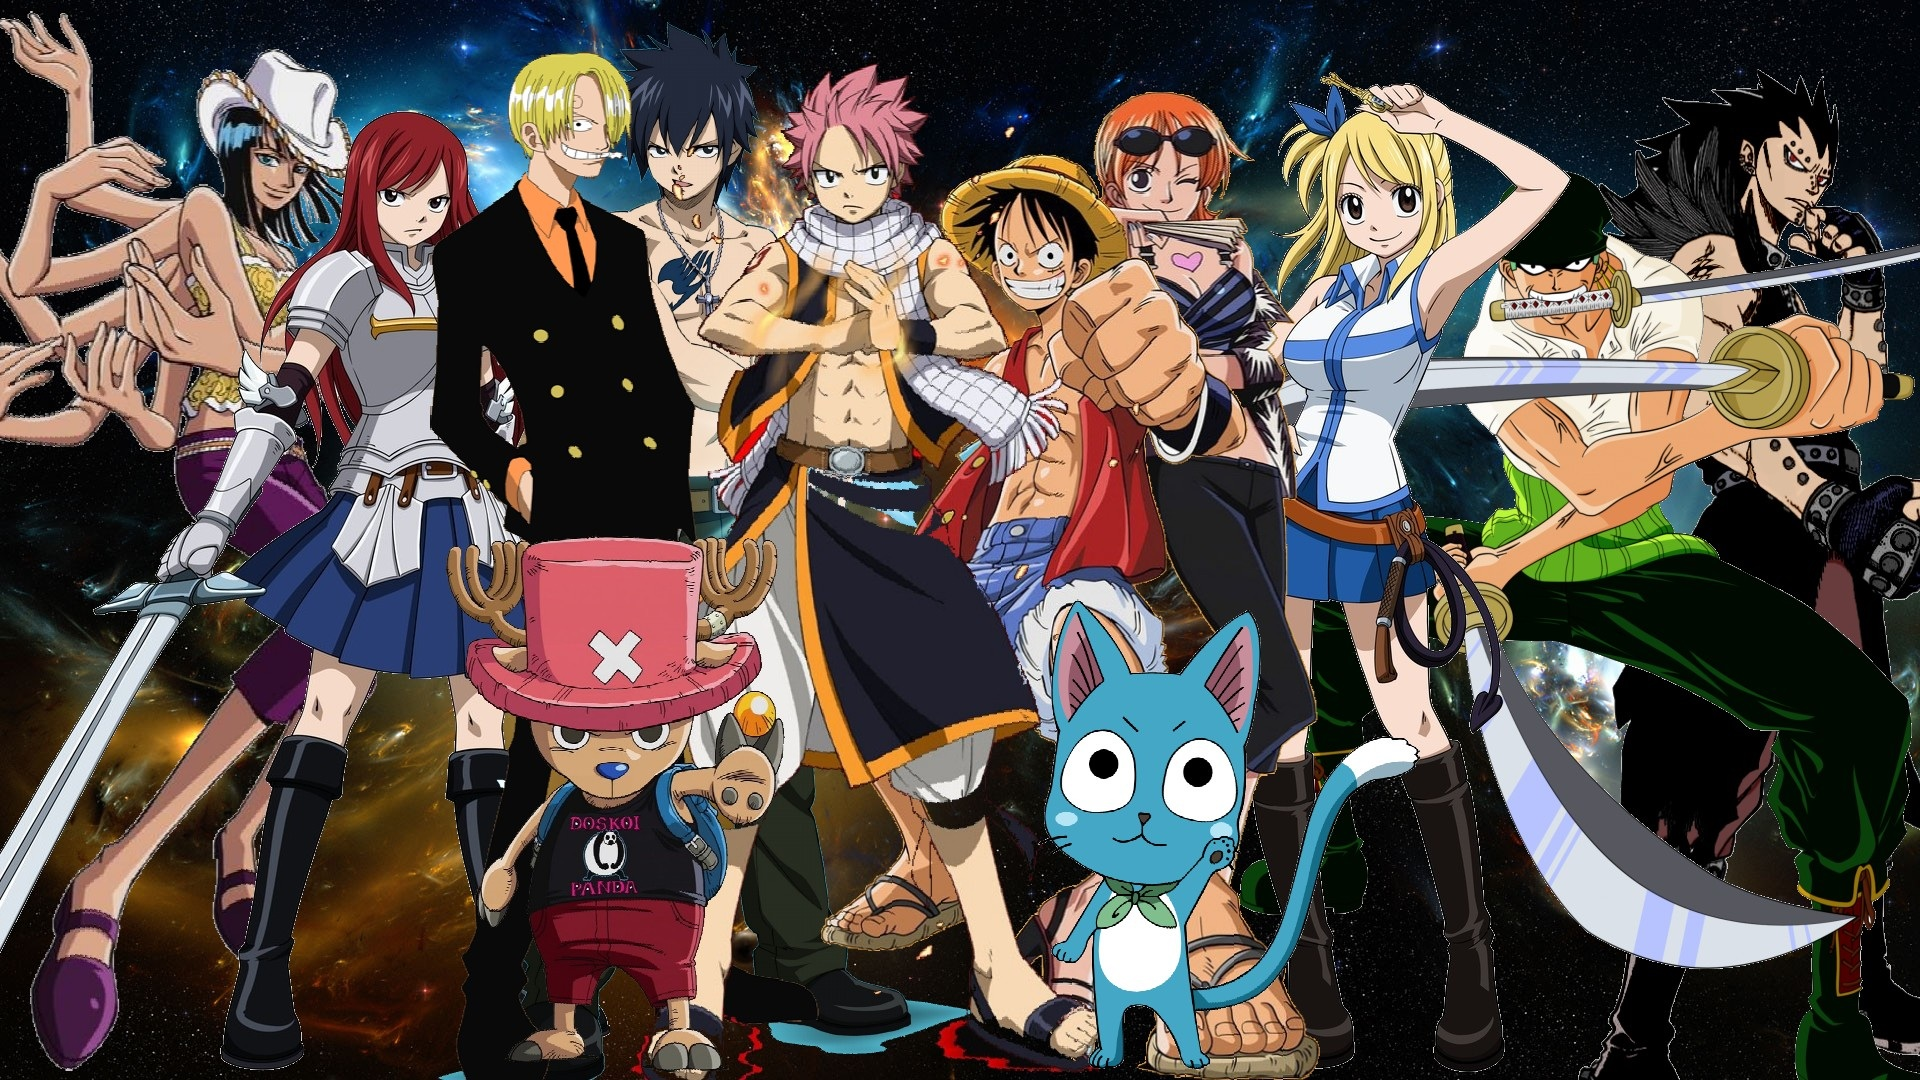 anime loverz images fairy tail and one piece hd wallpaper and